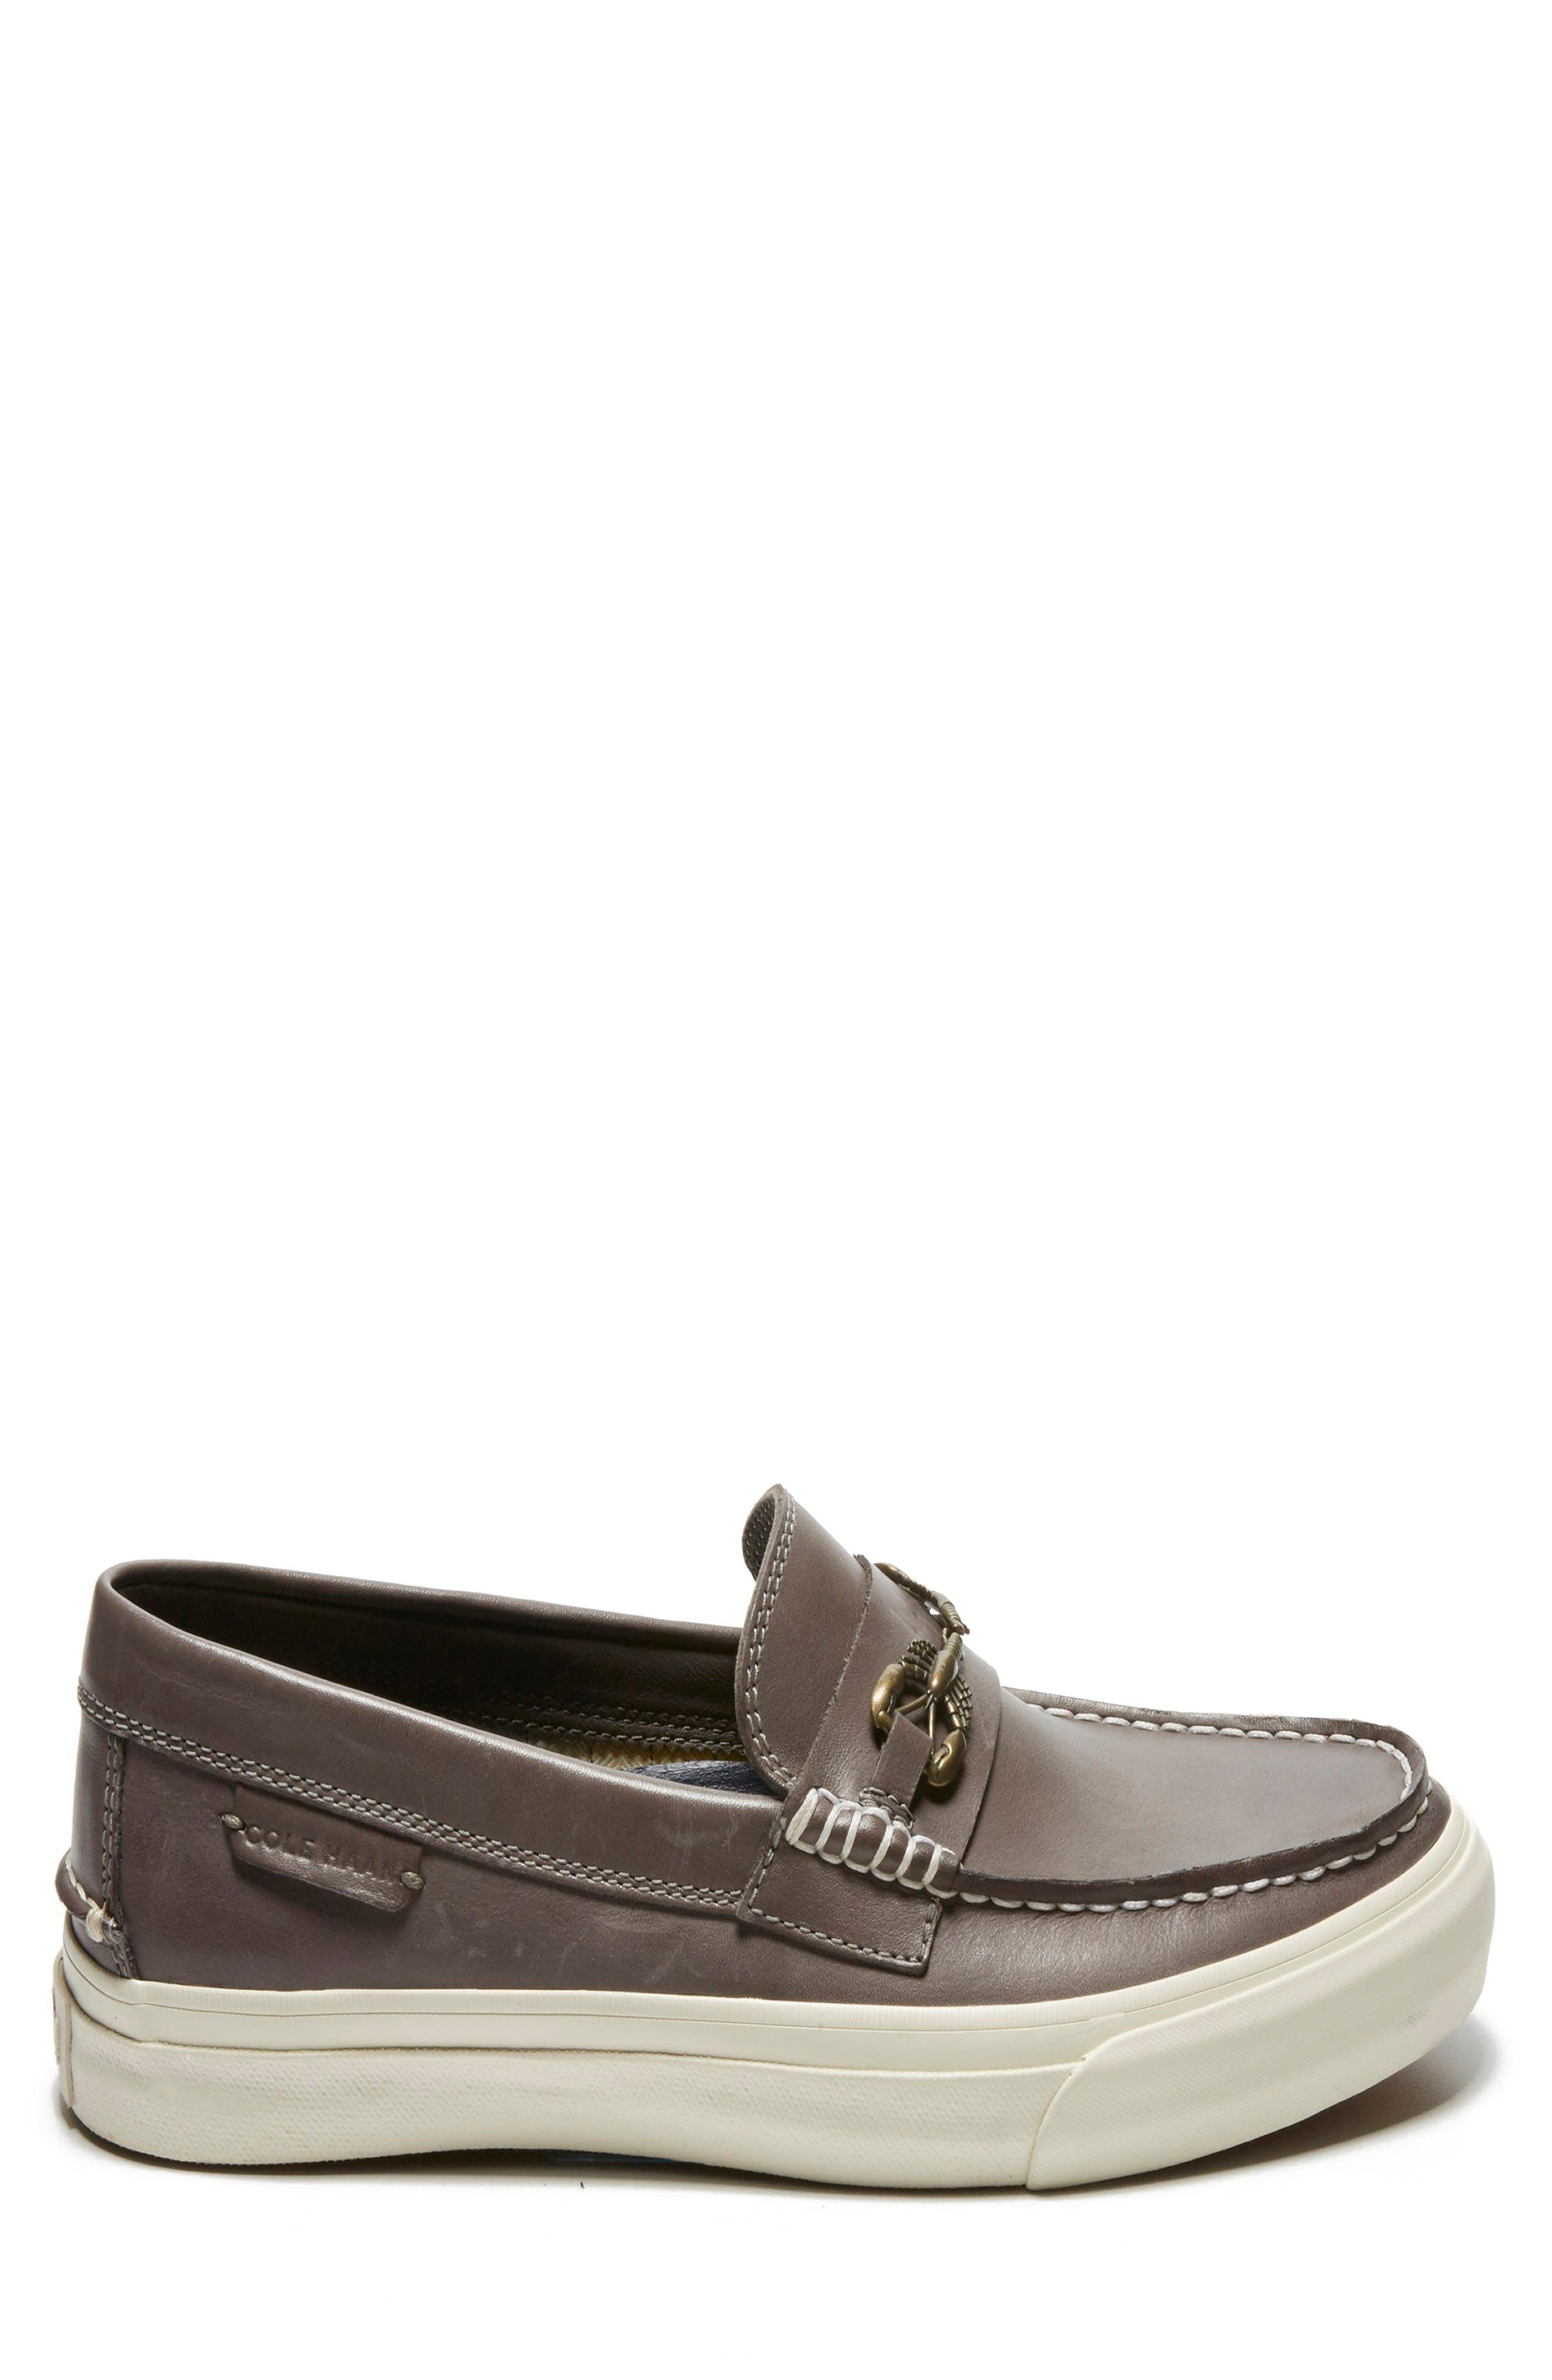 Pinch Weekend Loafer,                             Alternate thumbnail 6, color,                             Stormcloud Handstain